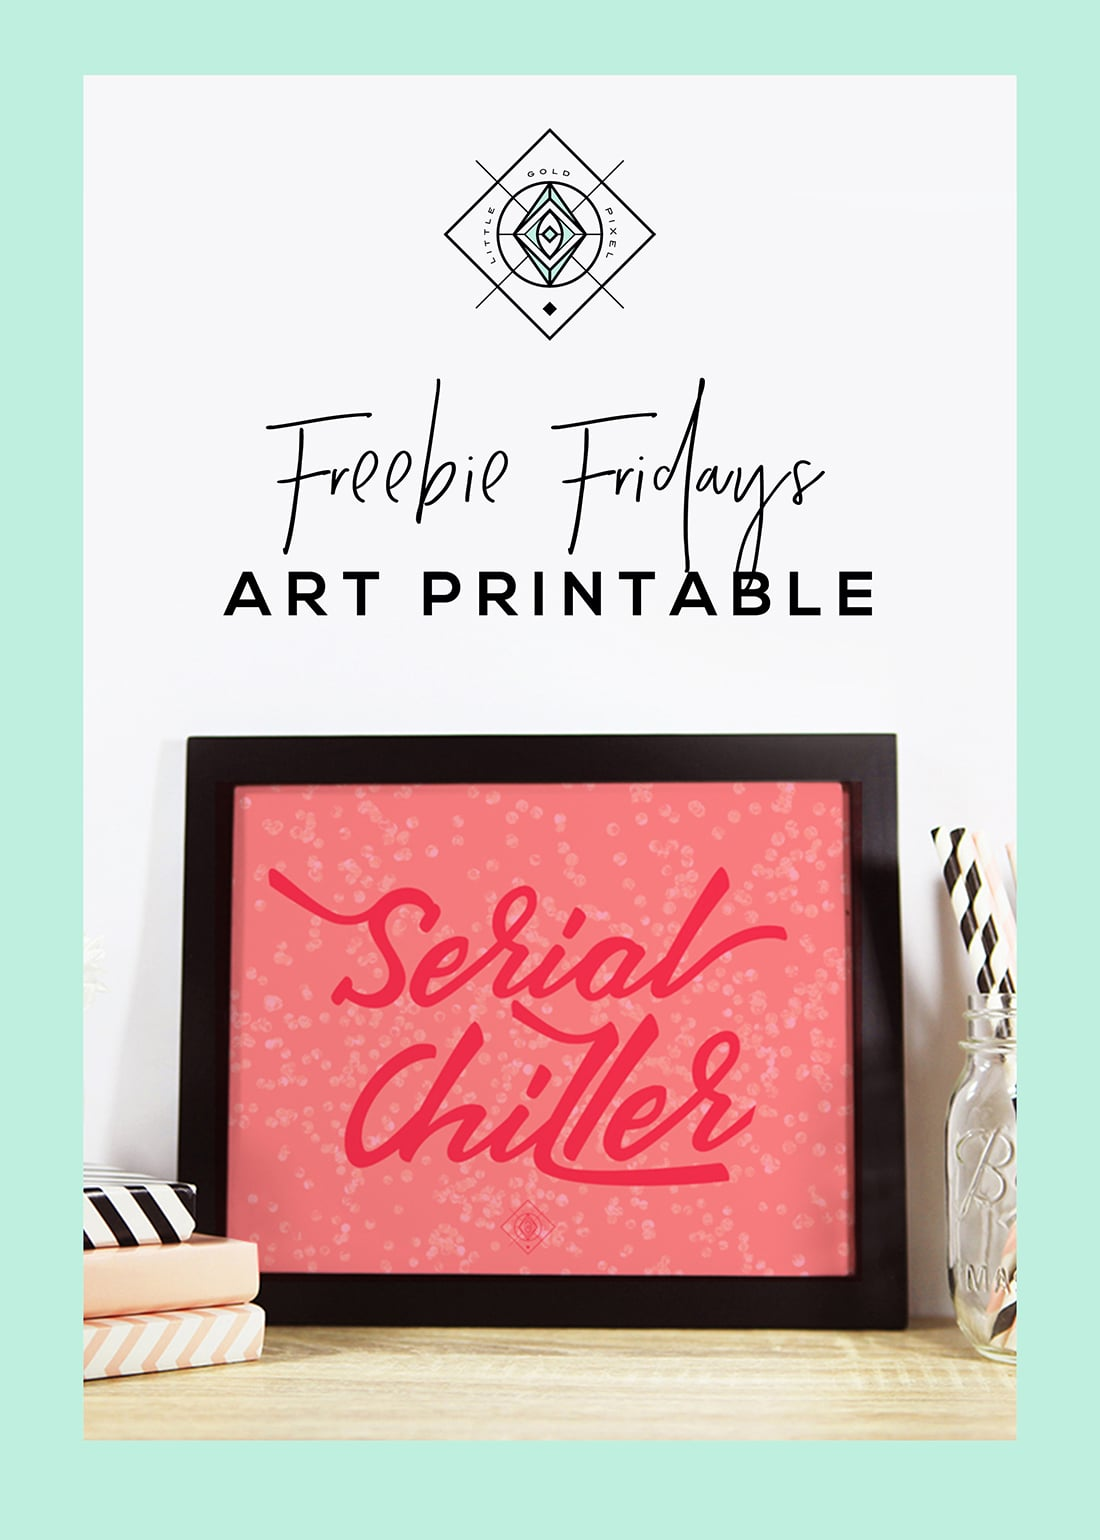 Serial Chiller Free Art Printable • Freebie Fridays • Little Gold Pixel